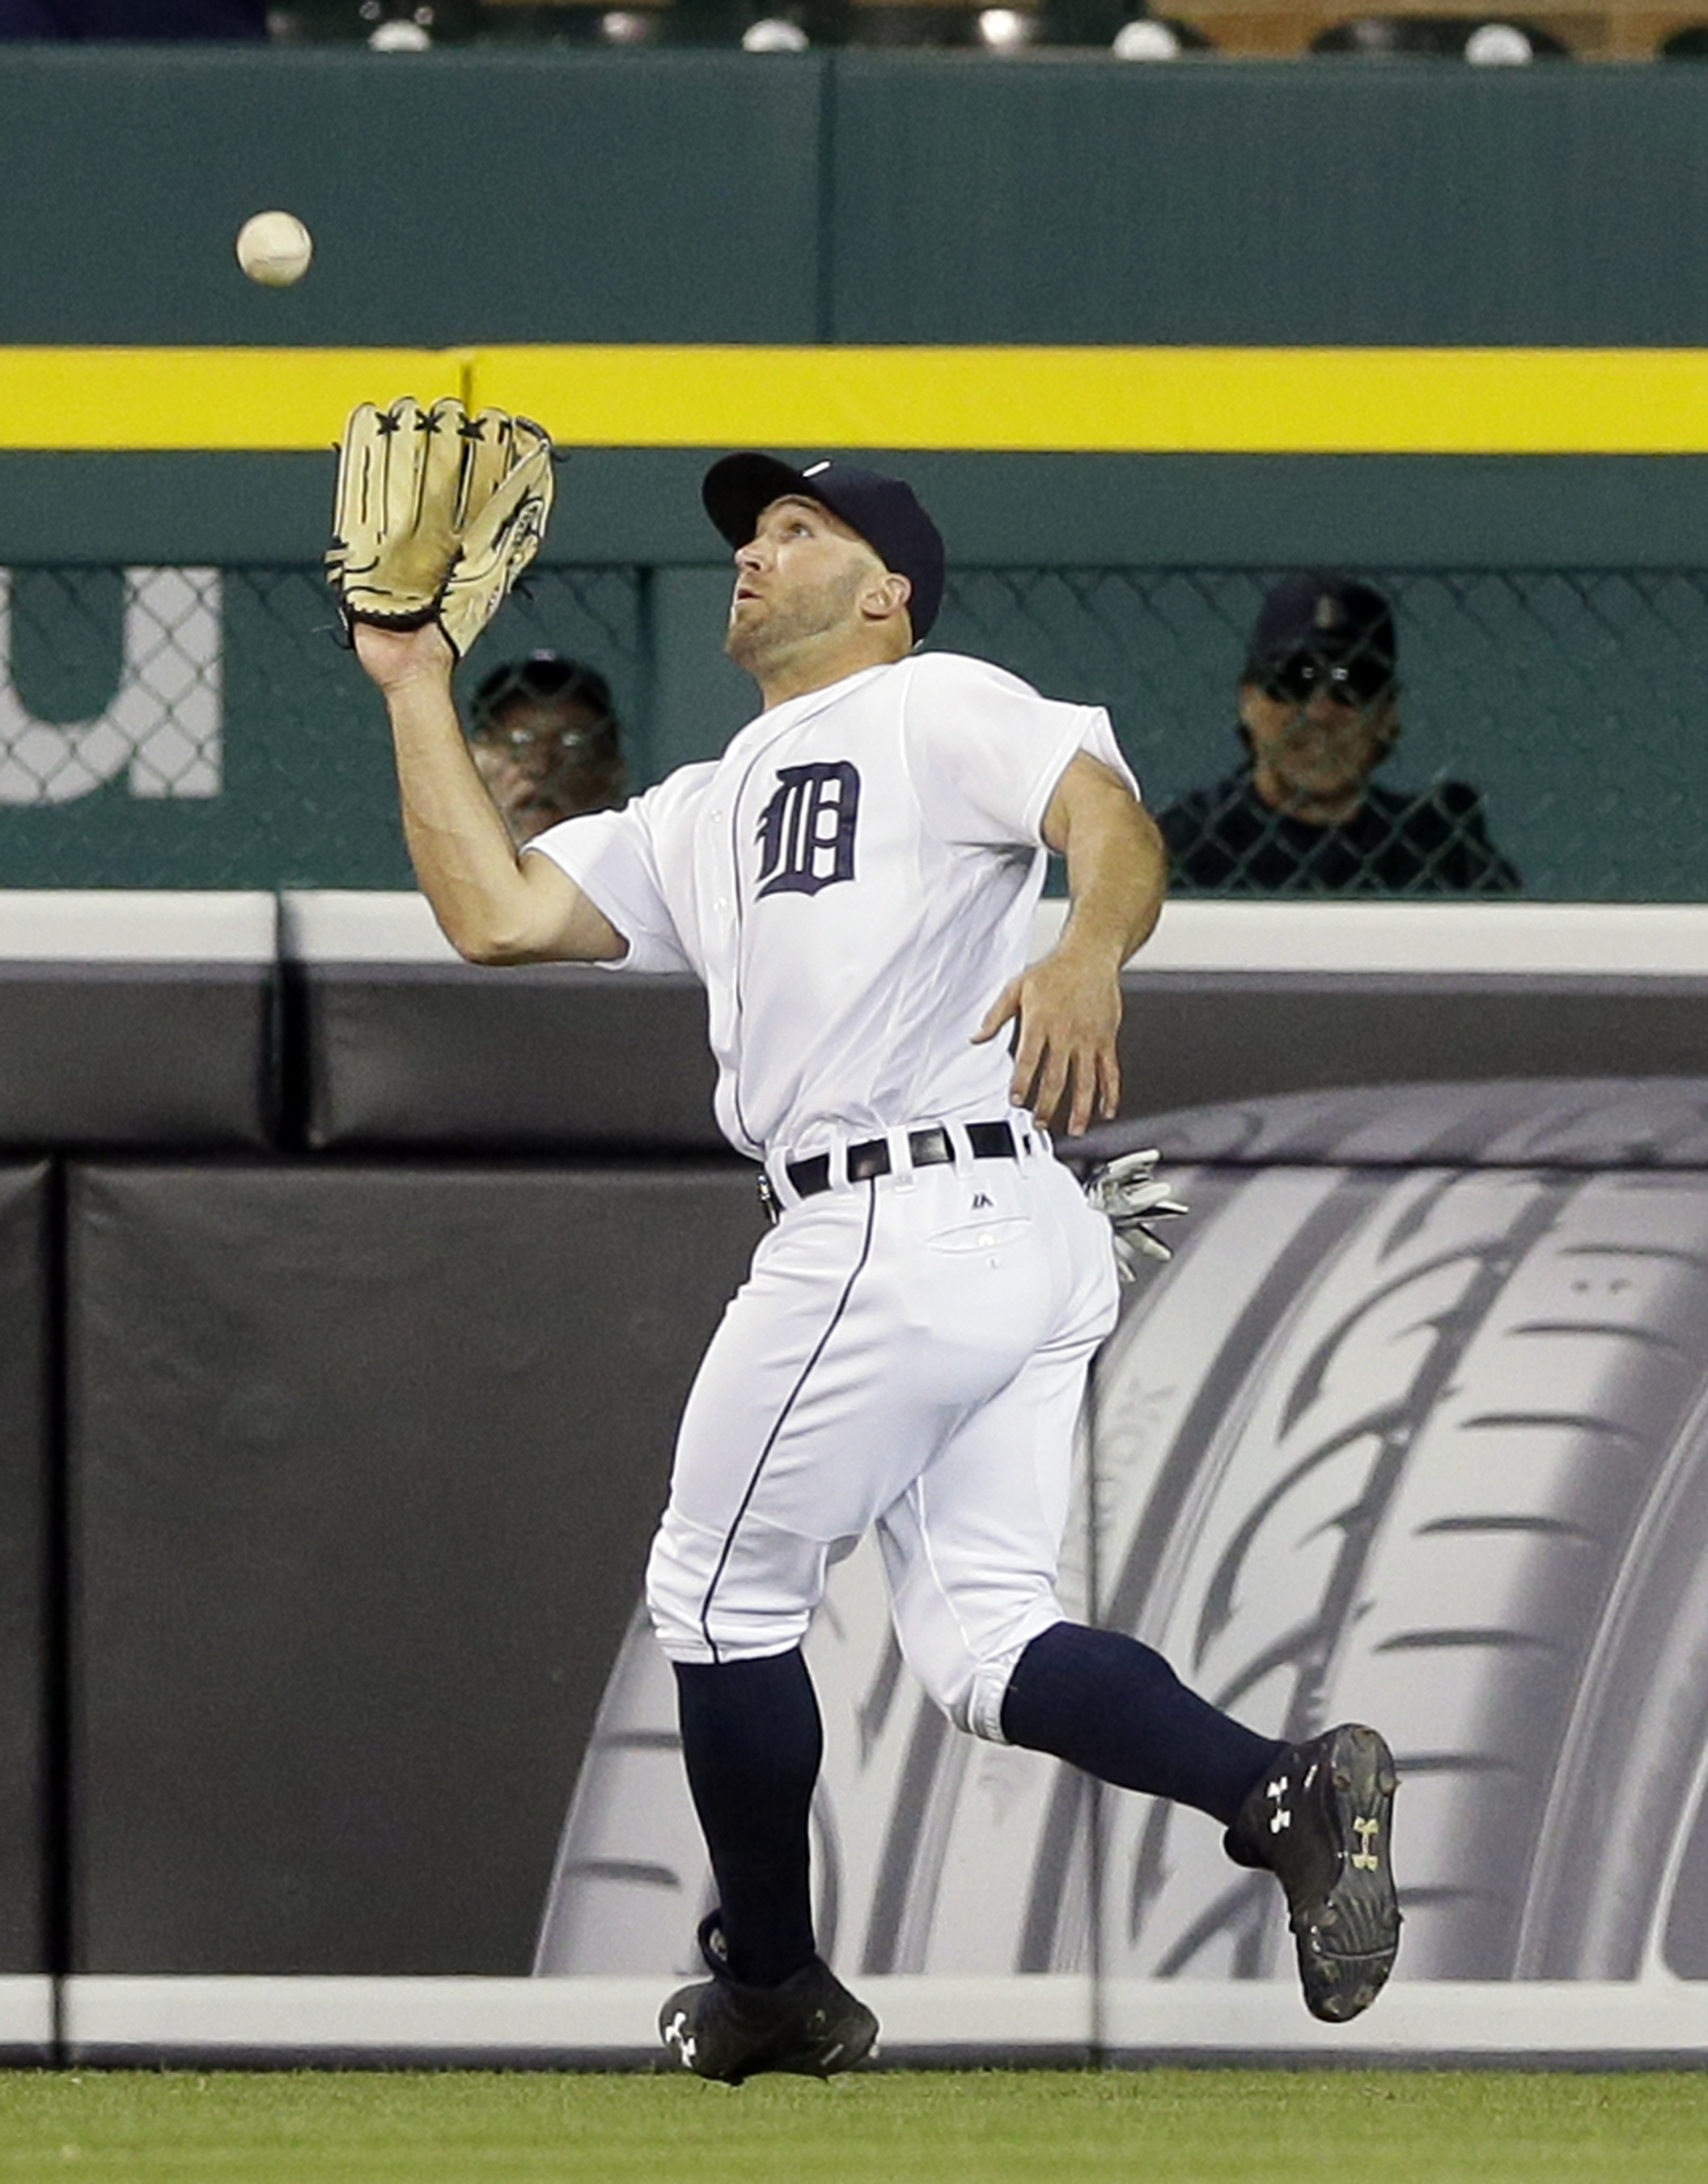 Detroit Tigers center fielder Tyler Collins catches a fly ball hit by Oakland Athletics' Chris Coghlan during the sixth inning of a baseball game, Monday, April 25, 2016 in Detroit. Collins directed an obscene gesture at fans after he lost a ball in the l